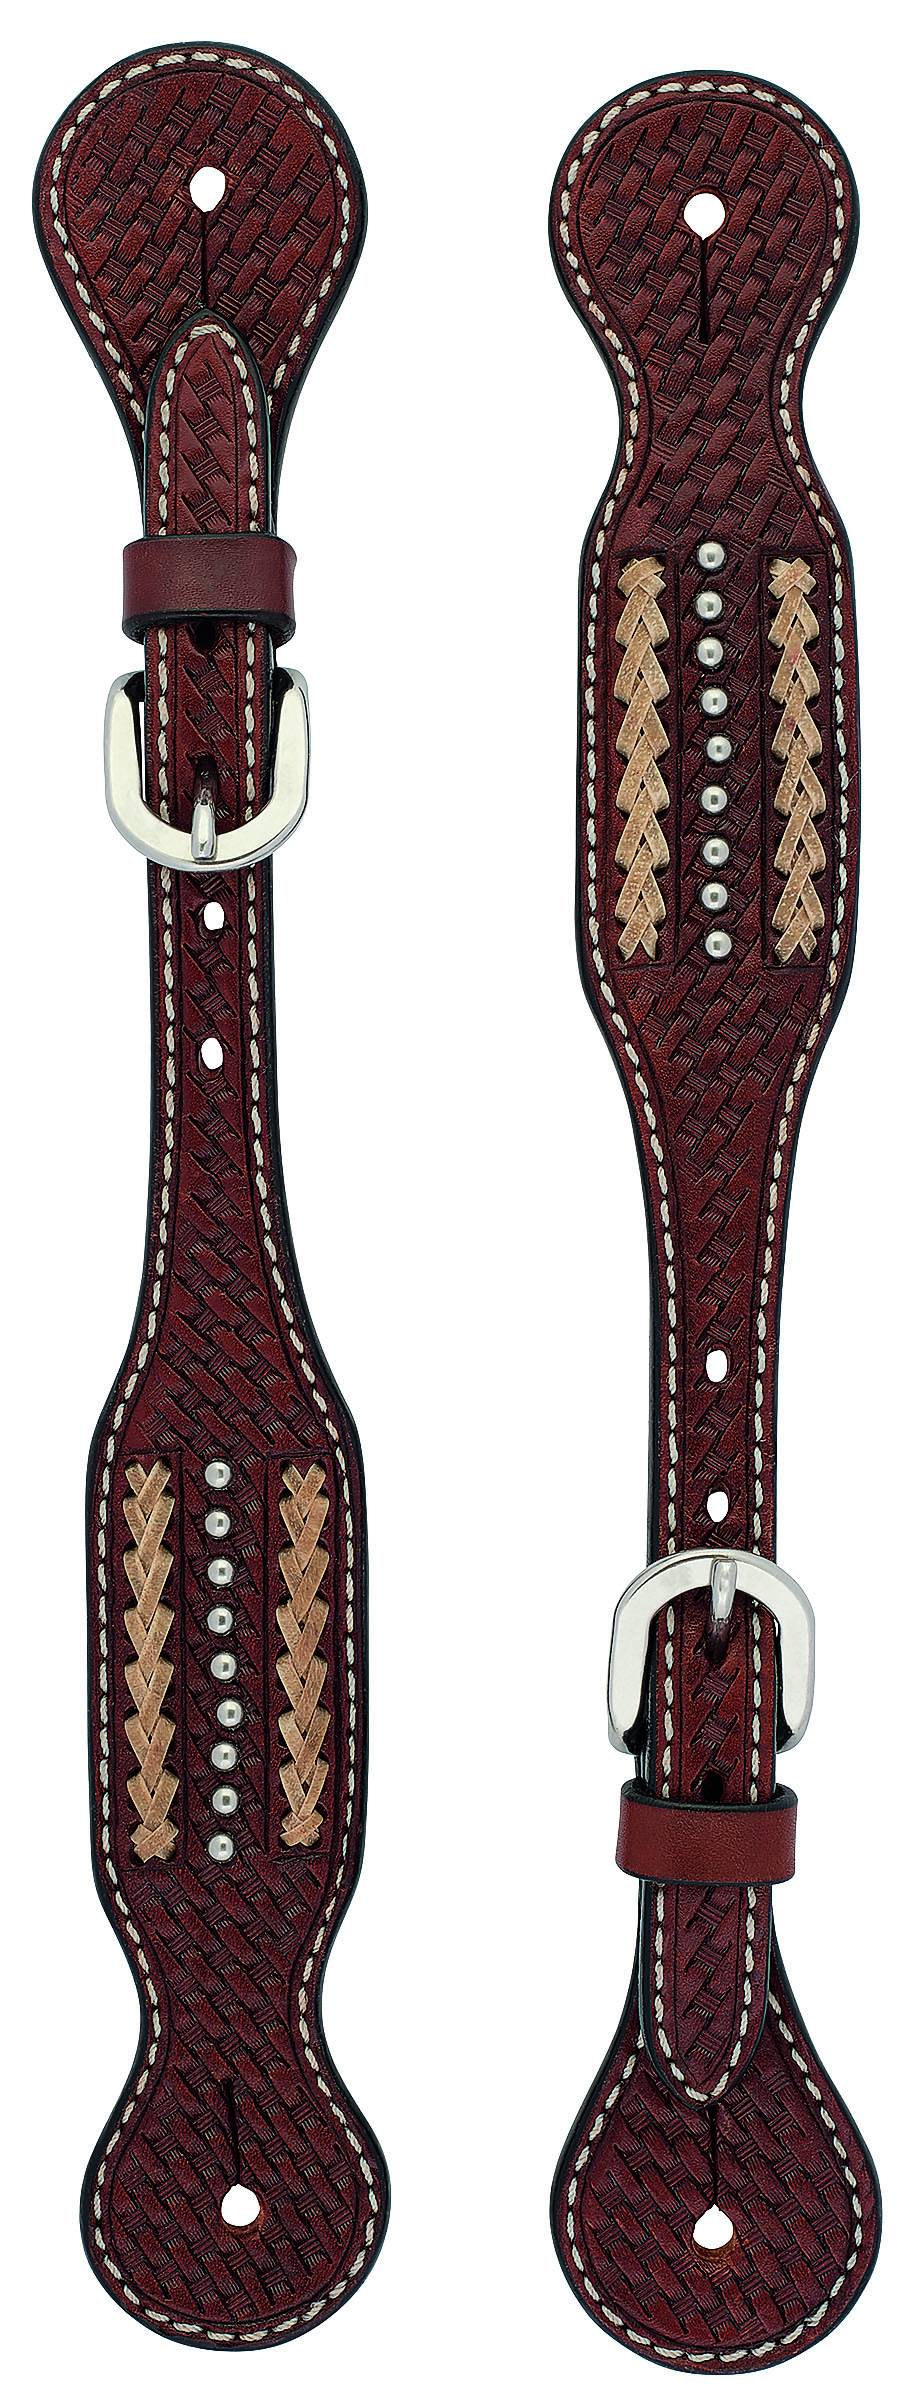 Weaver Cross Basketweave Rawhide Accent Spur Straps - Mens